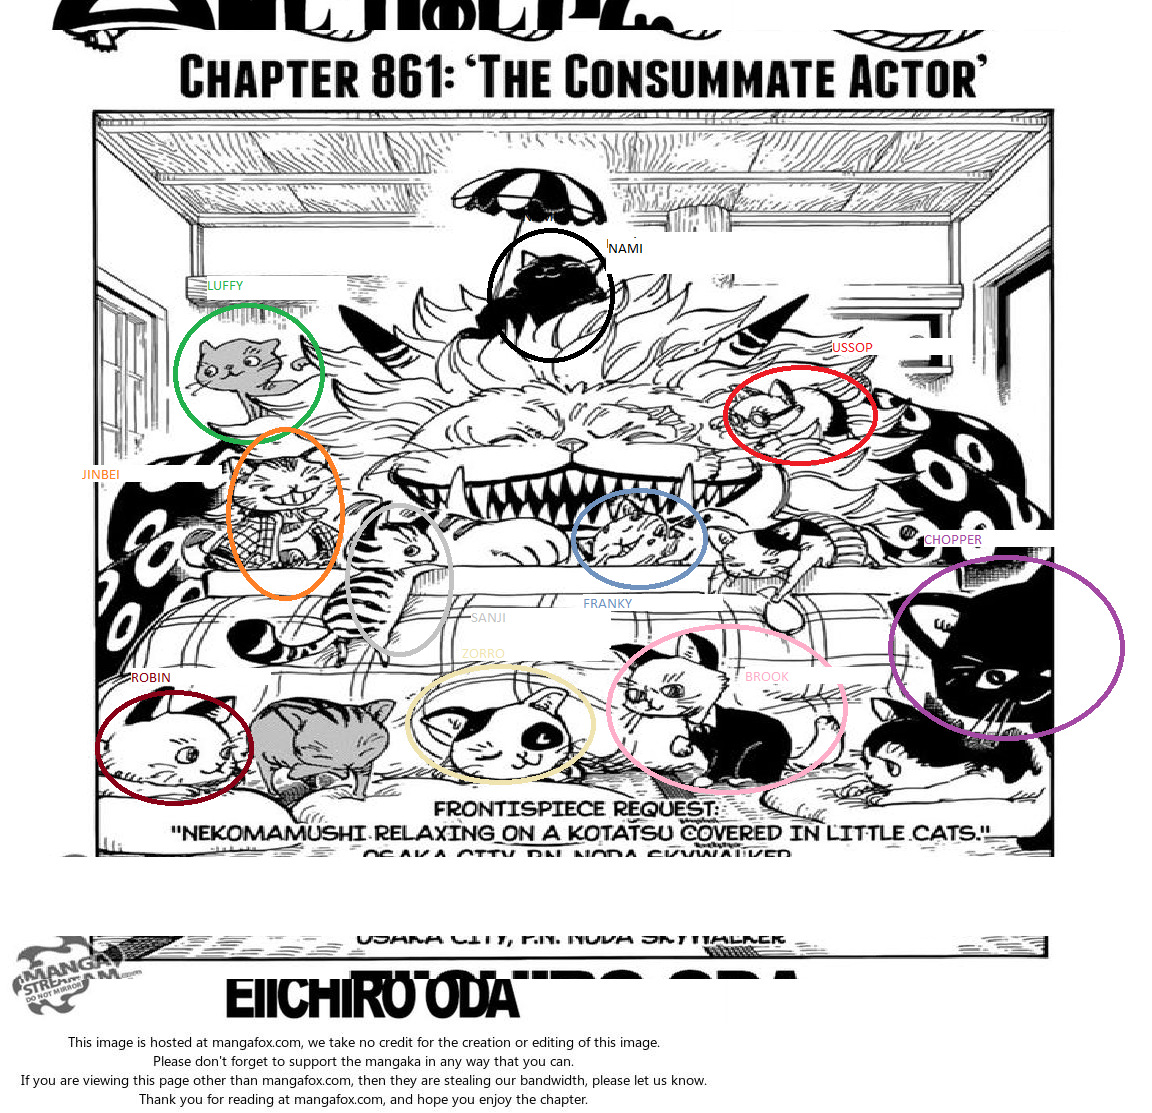 Chatter For Theories On One Piece: [CHAPTER 861 CAT THEORY] The 13th Members Of The Strawhat